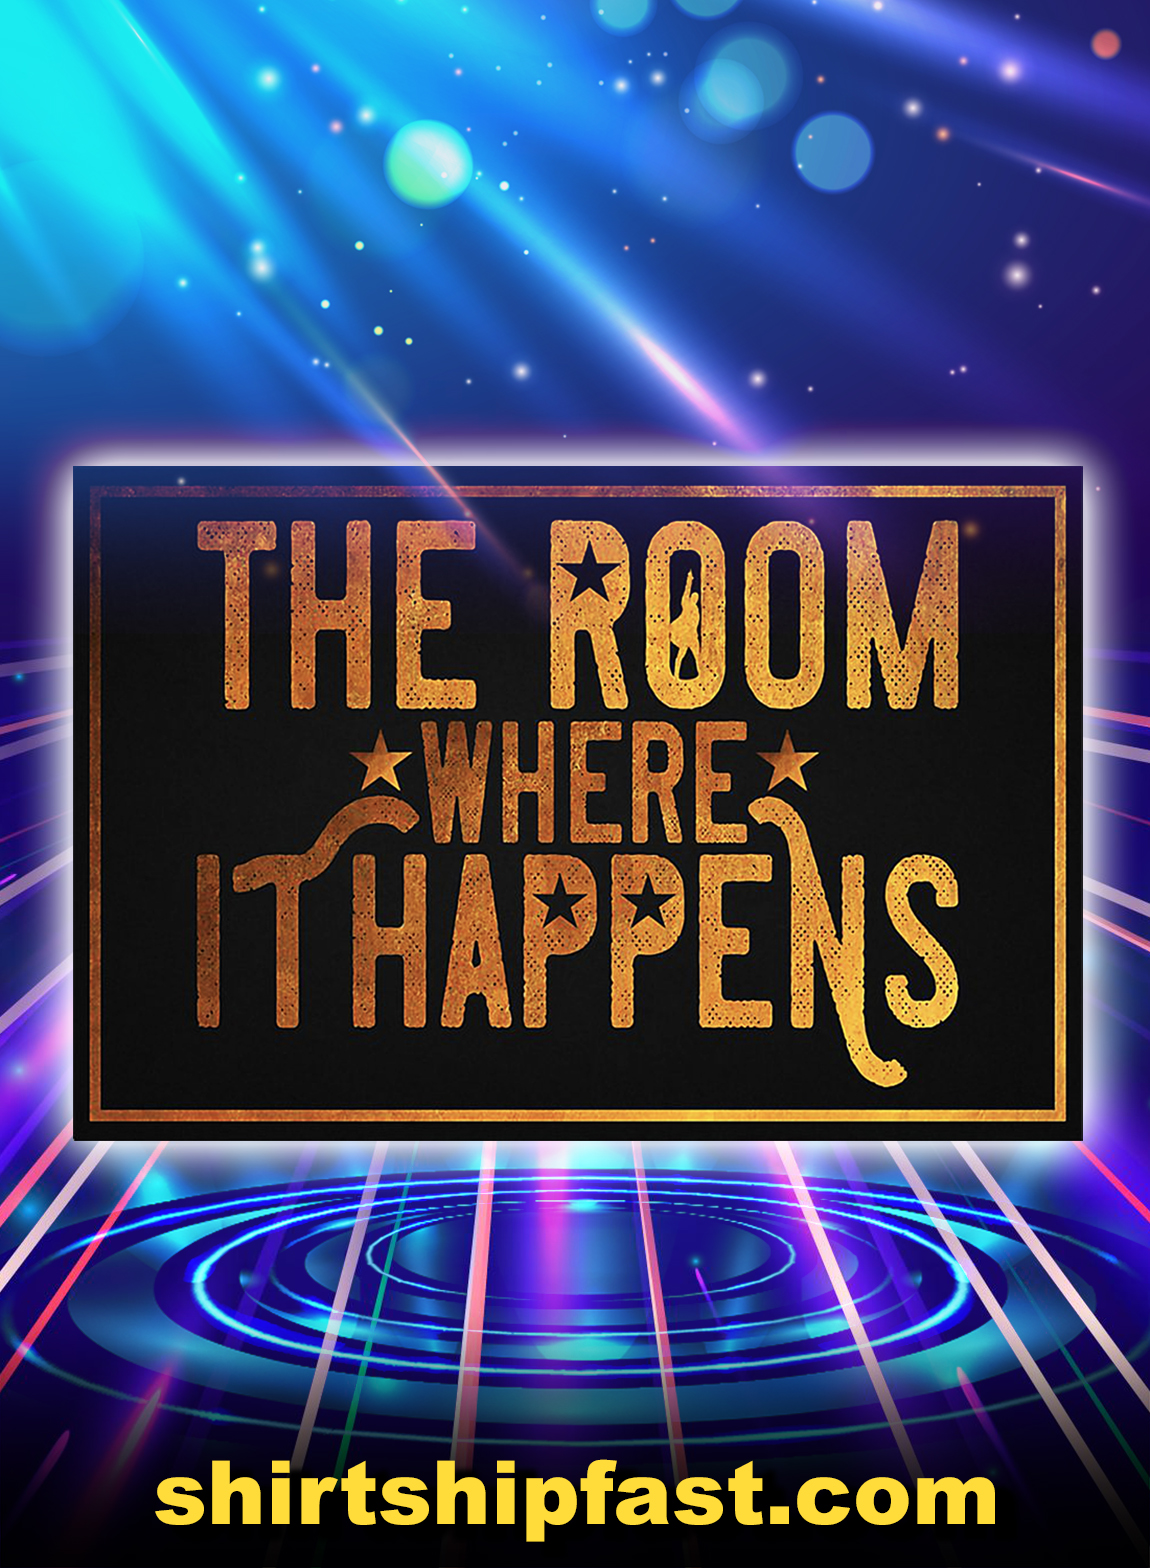 The room where it happens poster - A3